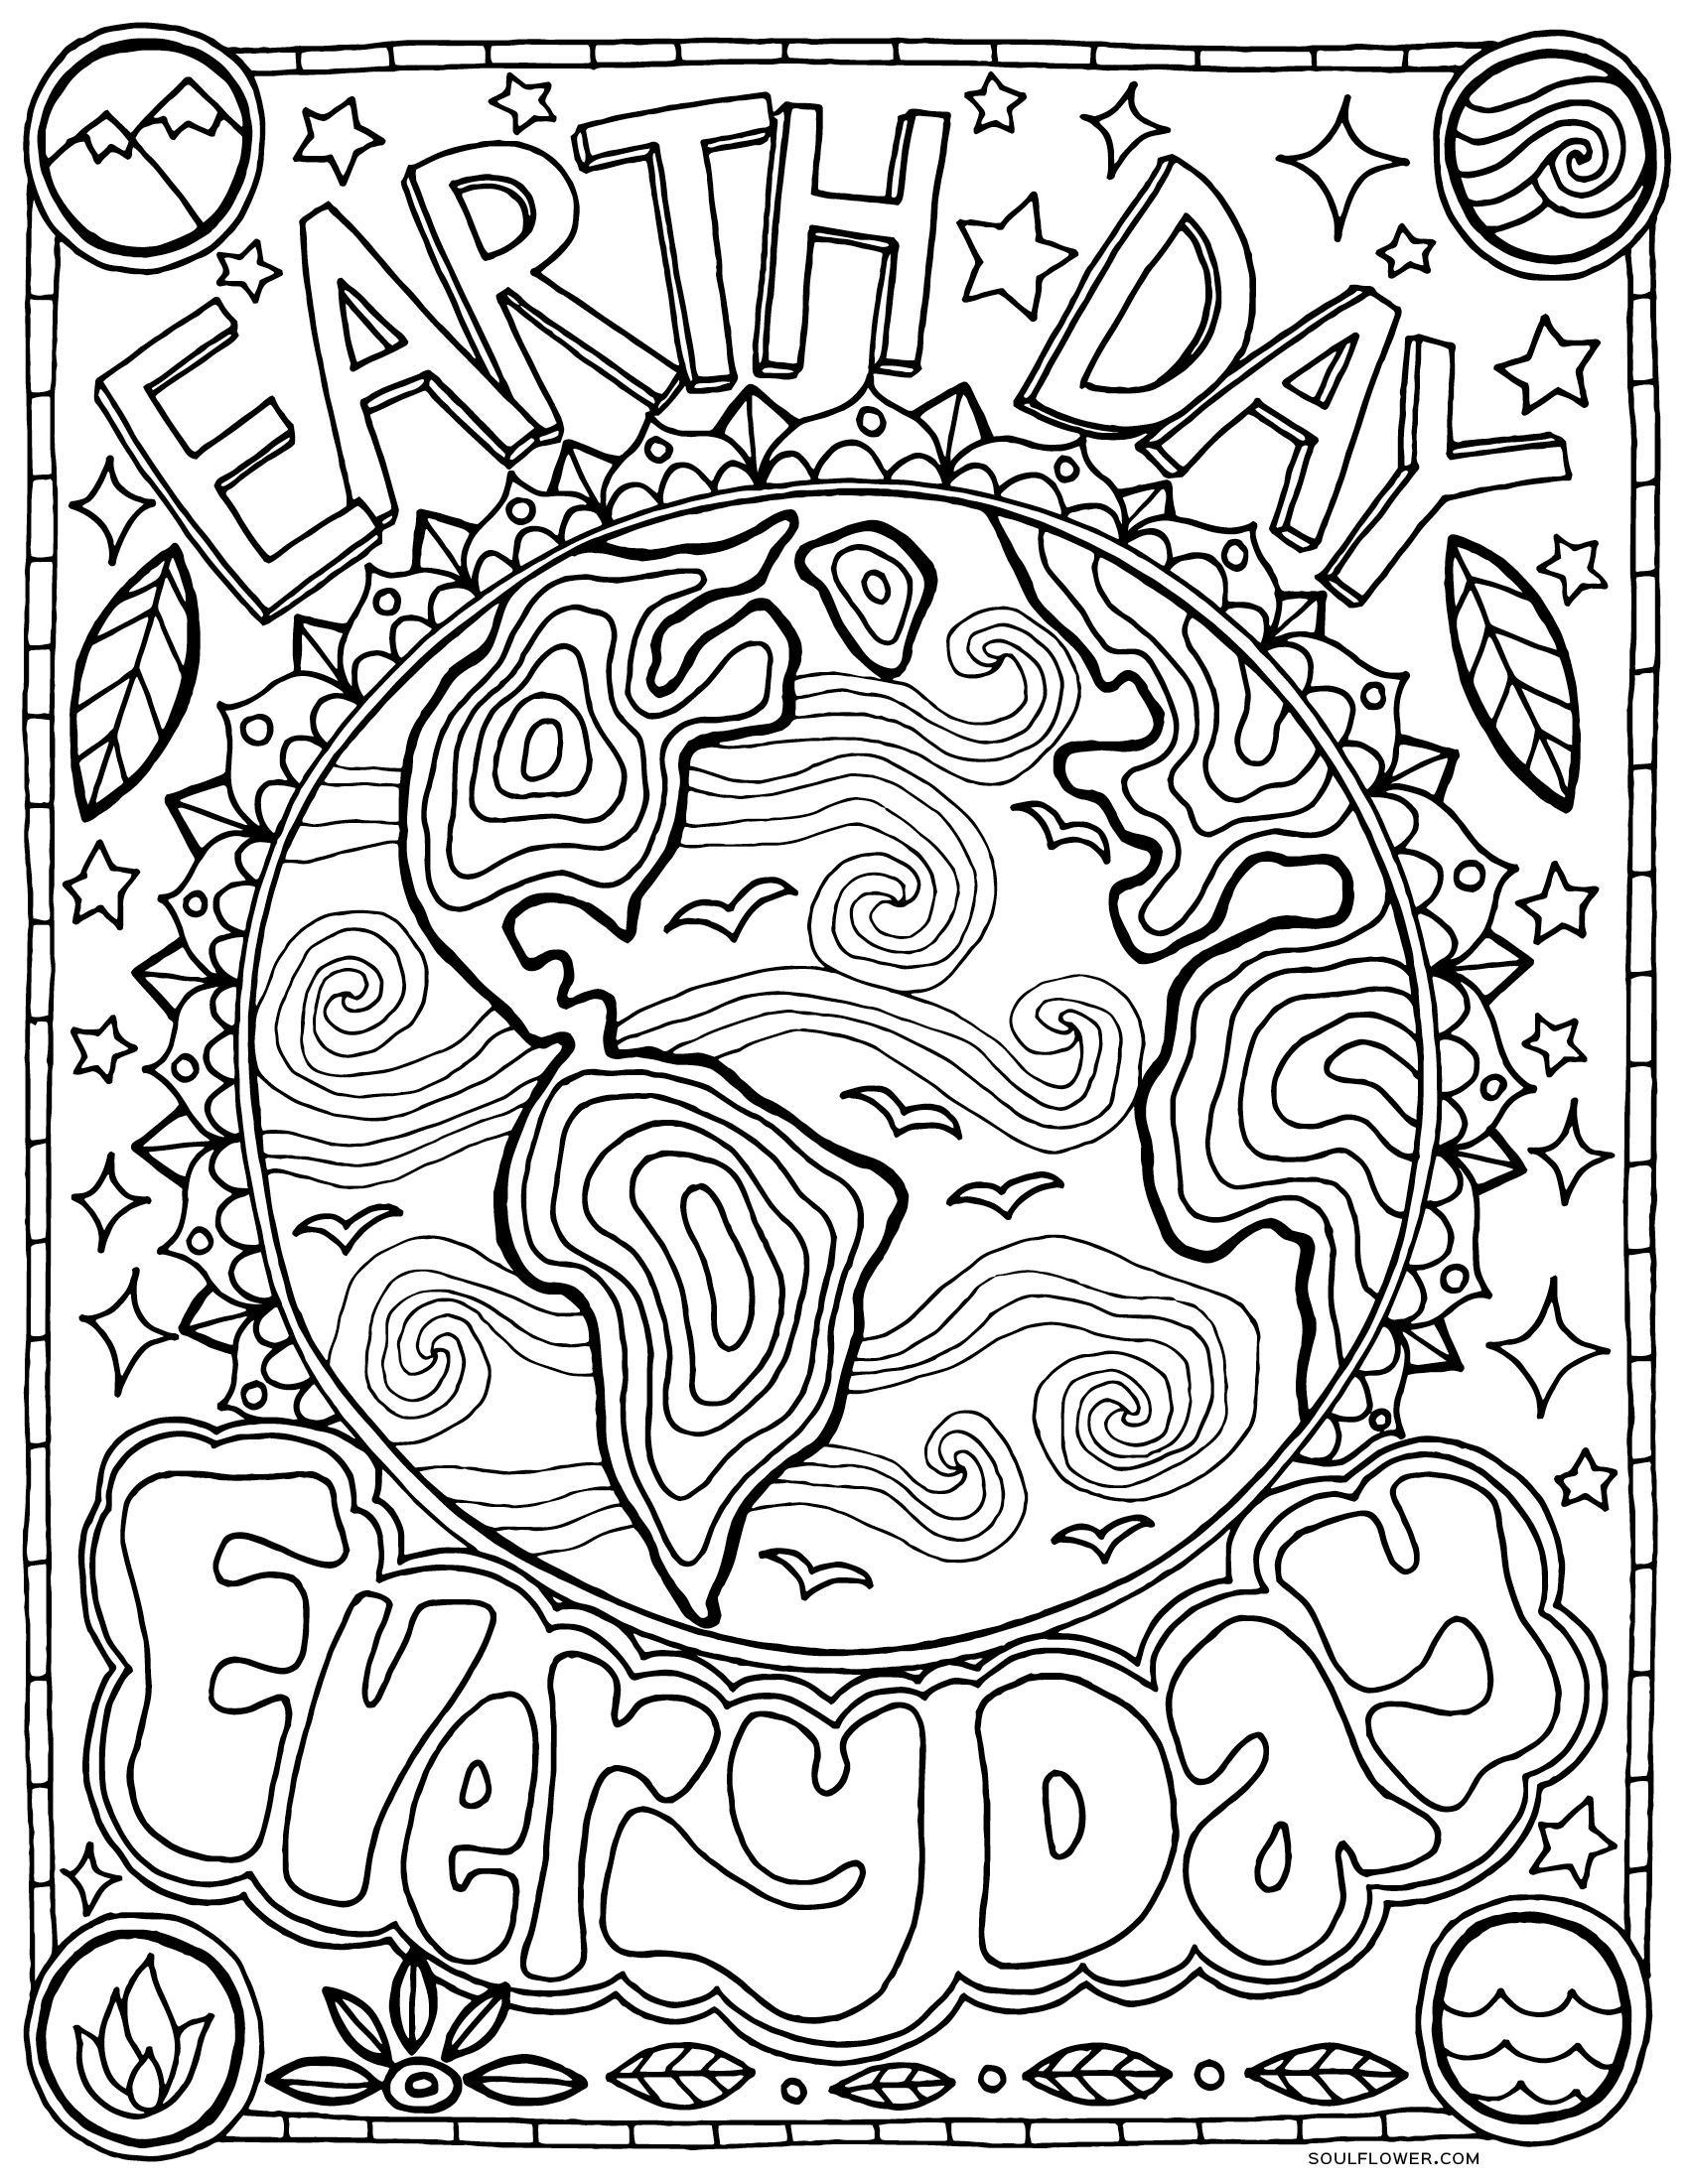 Free Earth Day Coloring Page Earth Day Every Day Earth Day Coloring Pages Earth Coloring Pages Earth Day Projects